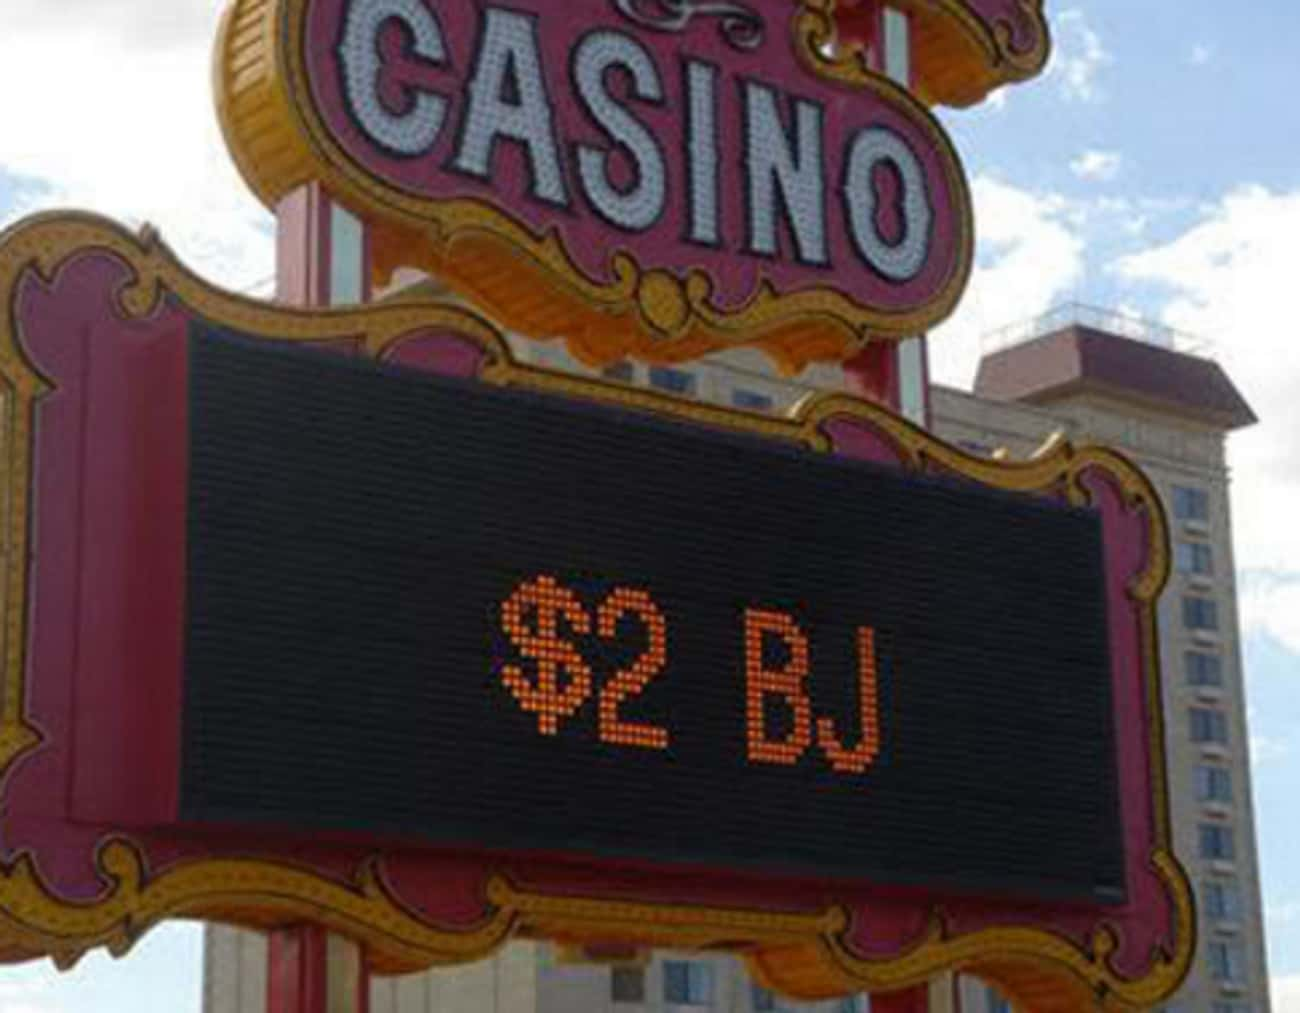 Sold! is listed (or ranked) 1 on the list Hilarious Photos That Should Have Stayed in Vegas